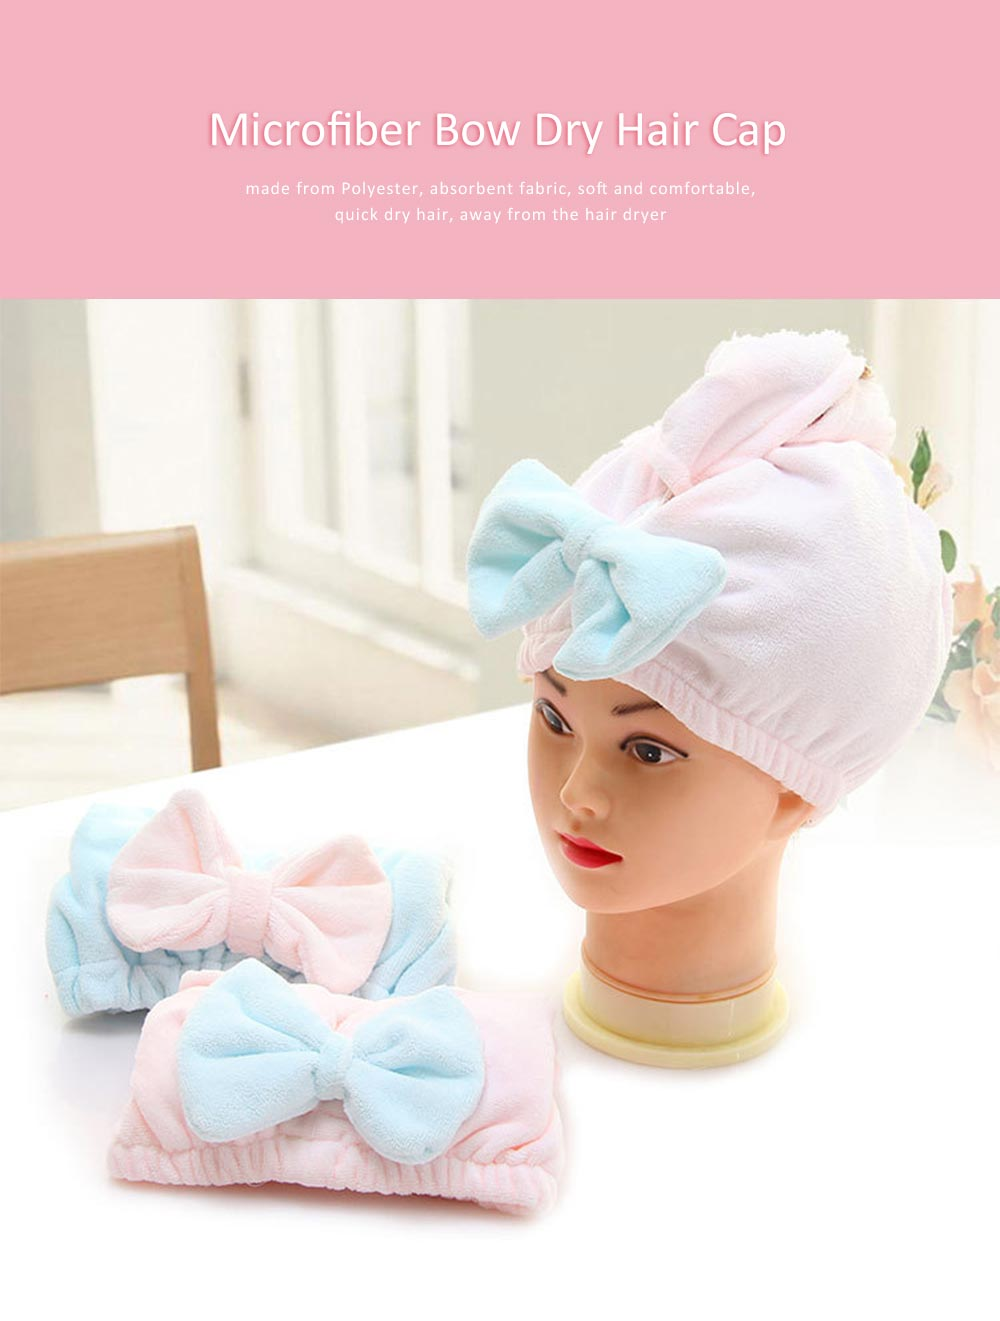 Dry Hair Cap Microfiber Bow, Soft Strong Absorbent Shower Cap 0